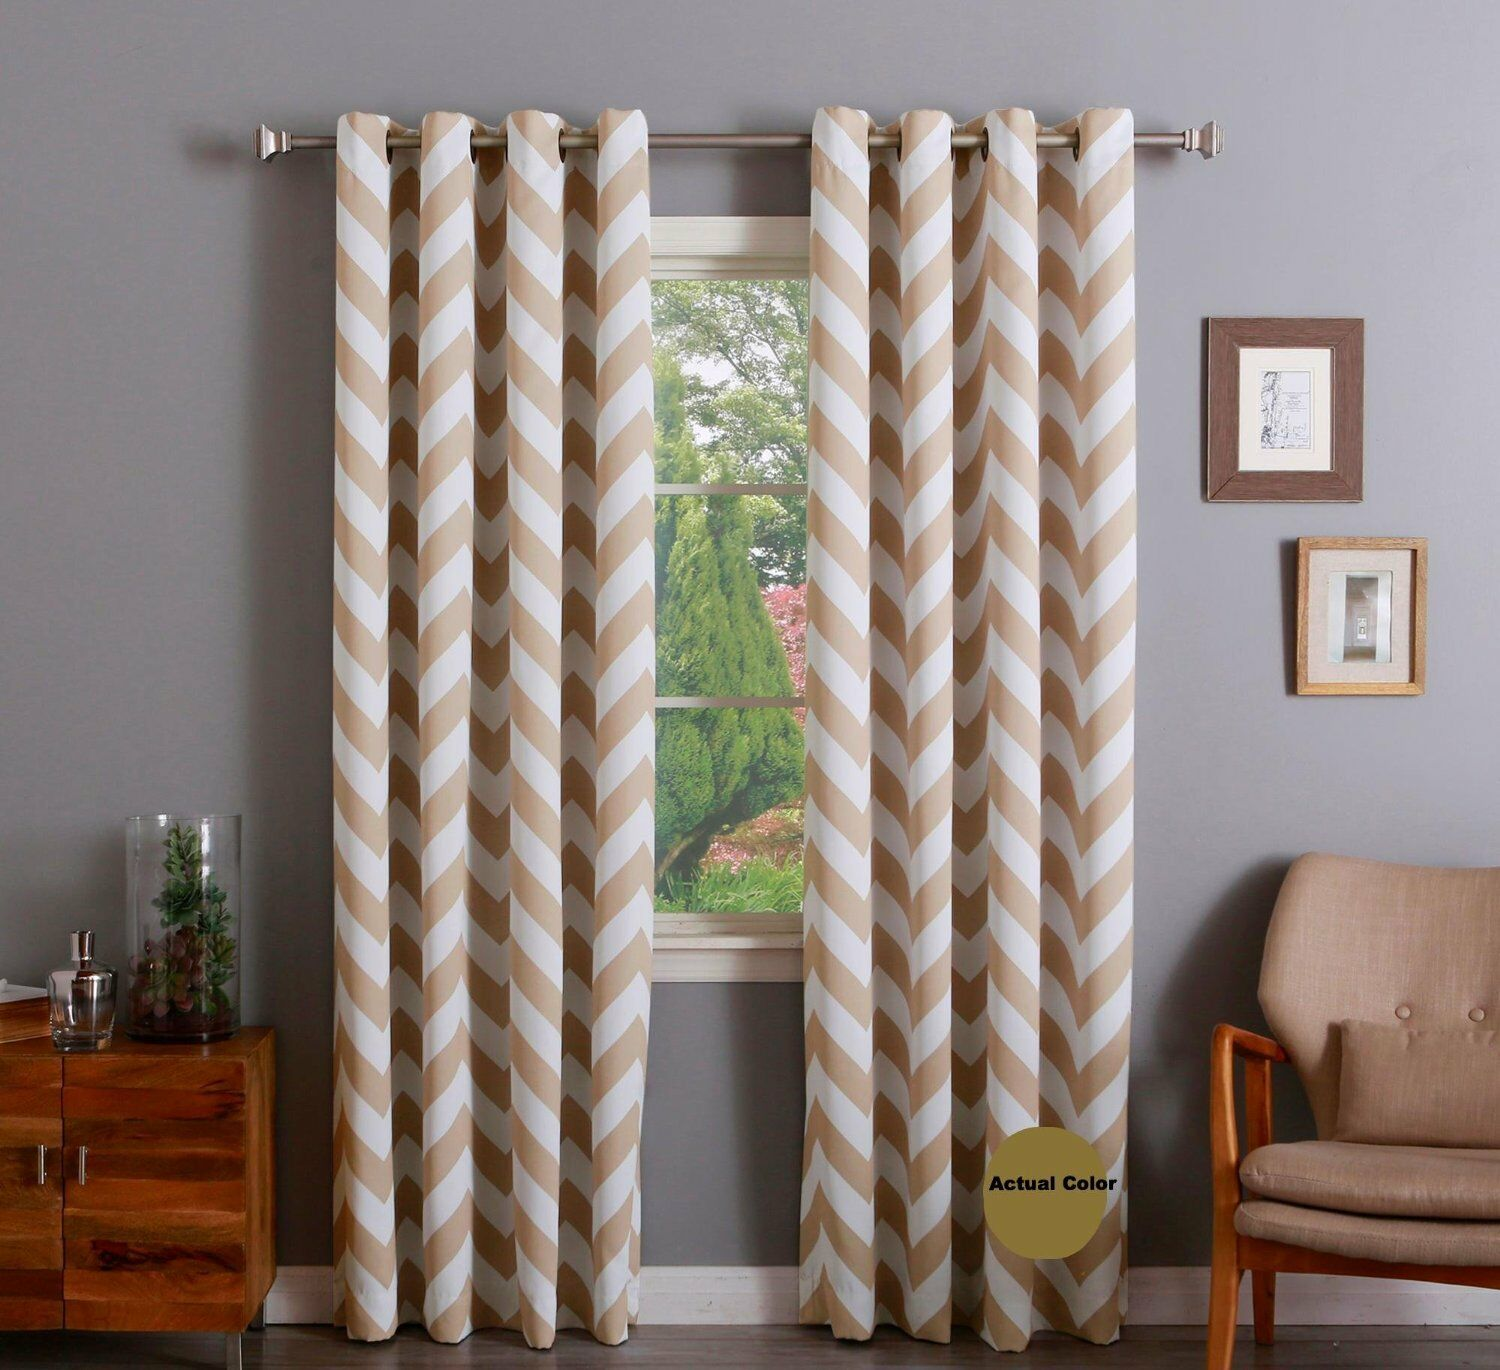 "Chevron 100% Thermal Blackout Grommet Curtain Panel 84"" x 52"" - Antique Taupe"